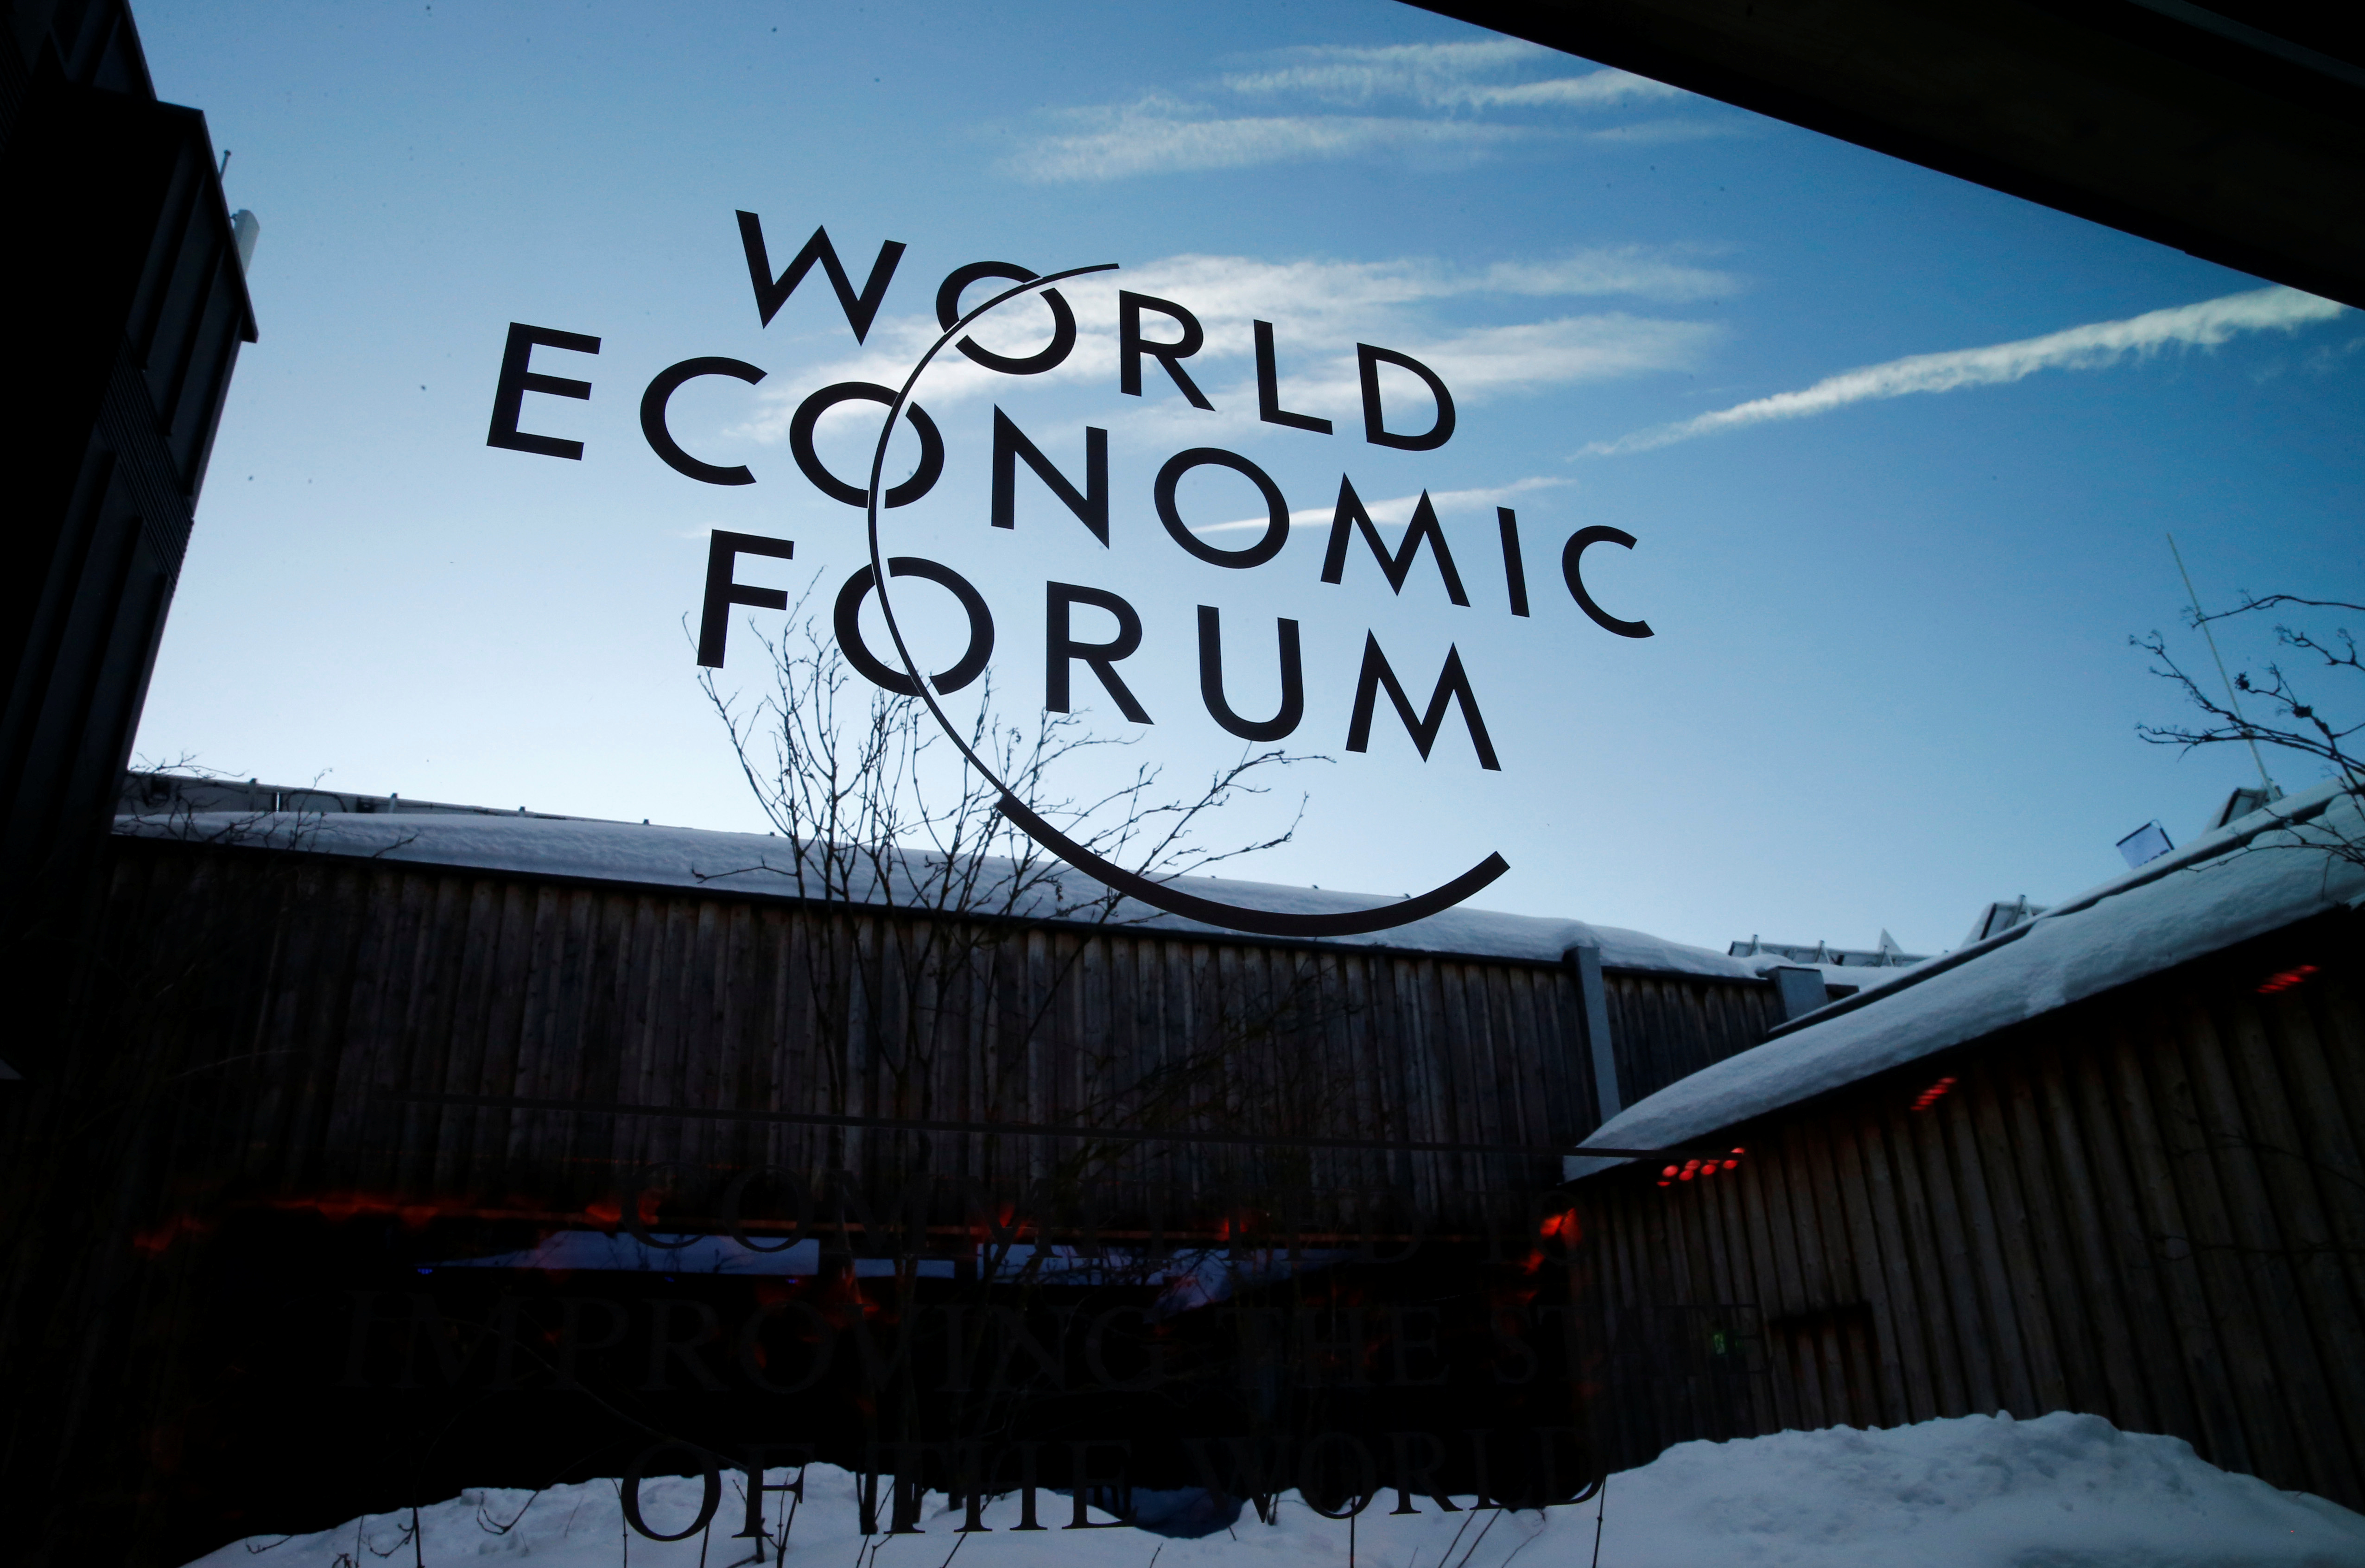 A logo of the 50th World Economic Forum (WEF) annual meeting is pictured on a window in Davos, Switzerland, January 21, 2020. REUTERS/Denis Balibouse